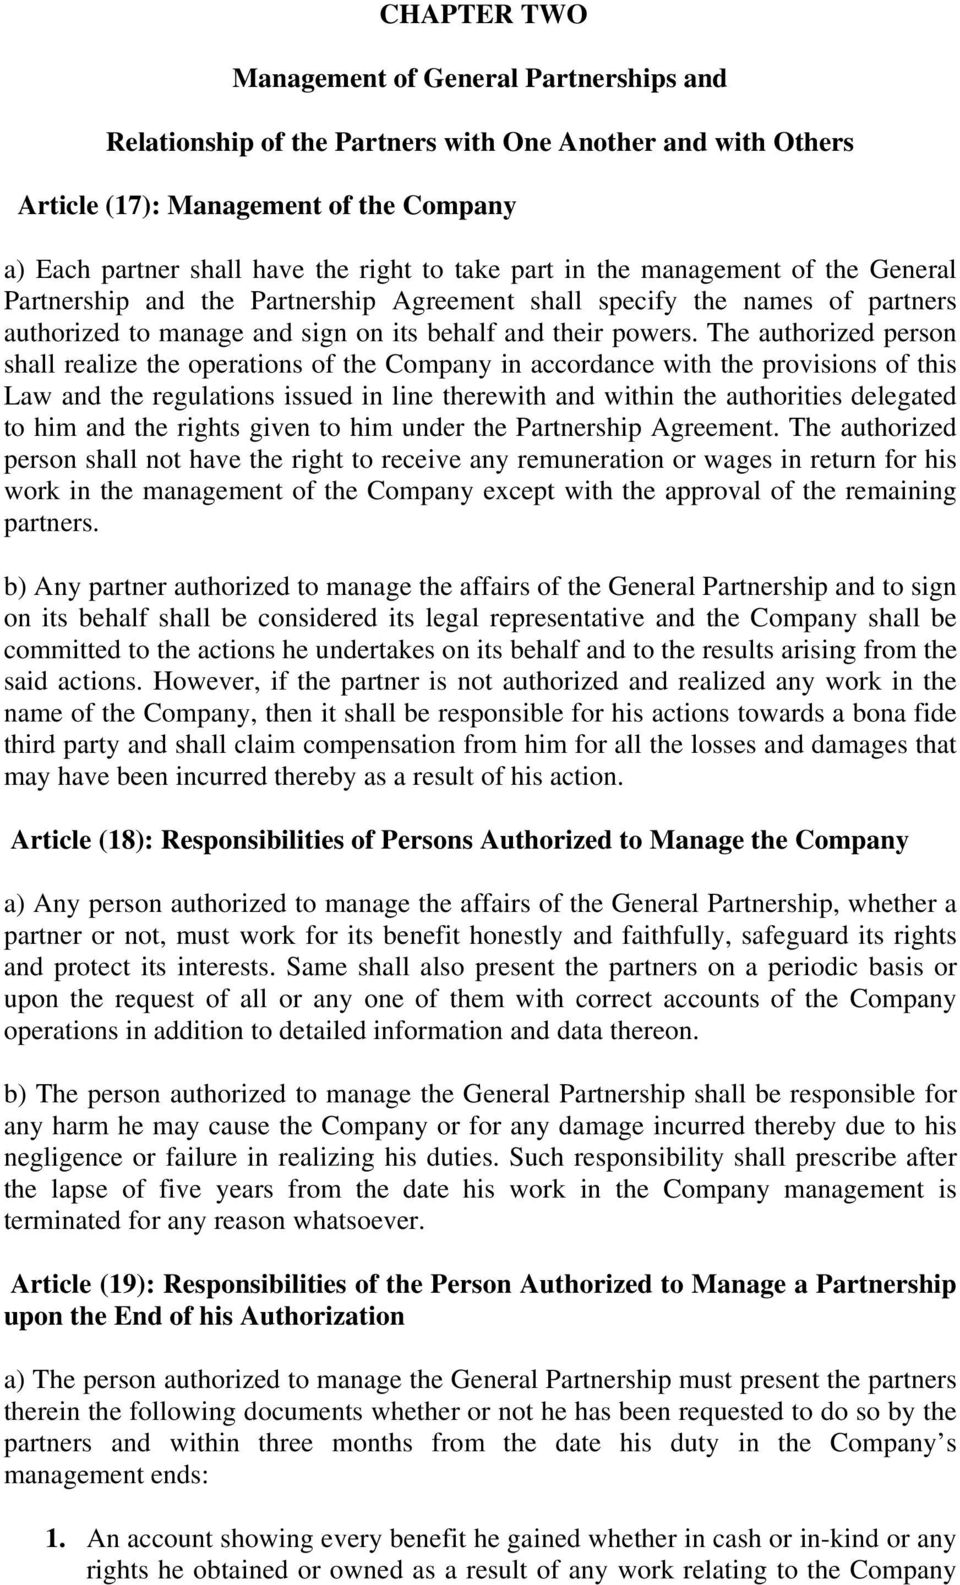 The authorized person shall realize the operations of the Company in accordance with the provisions of this Law and the regulations issued in line therewith and within the authorities delegated to